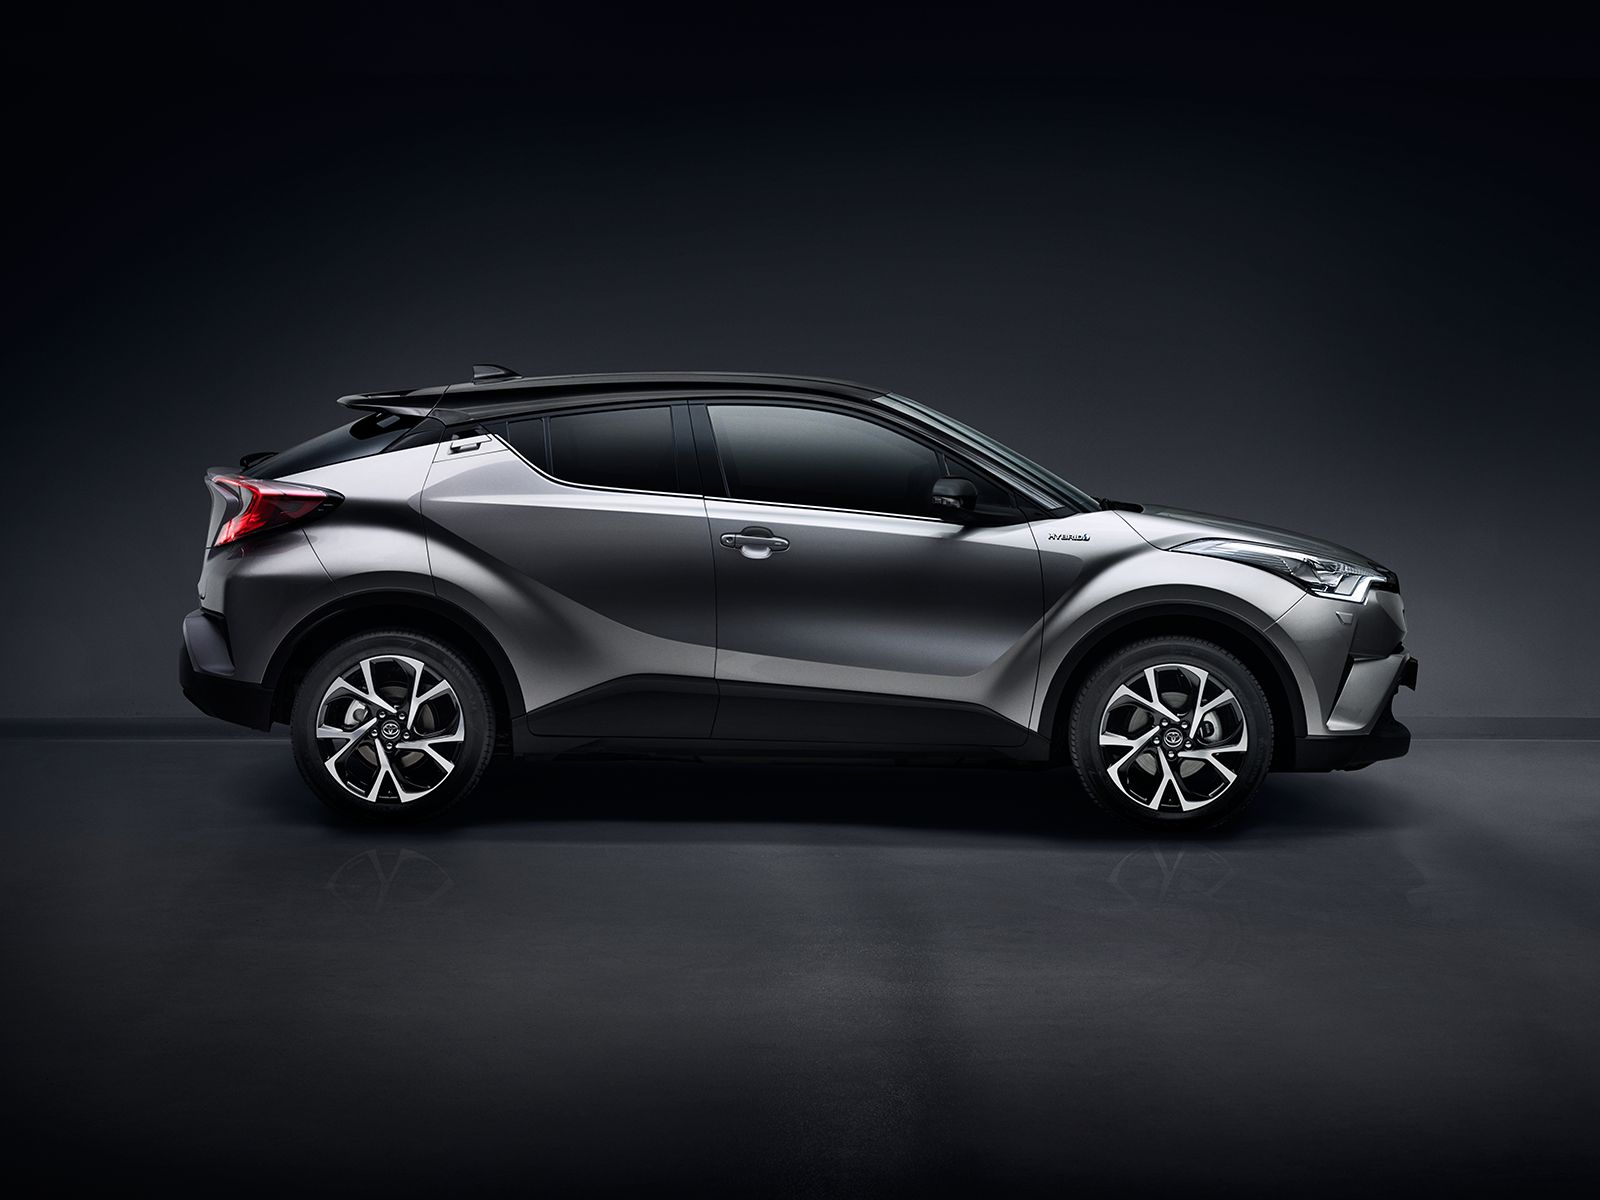 New Toyota CHR, Coupe High Rider Hybrid Crossover